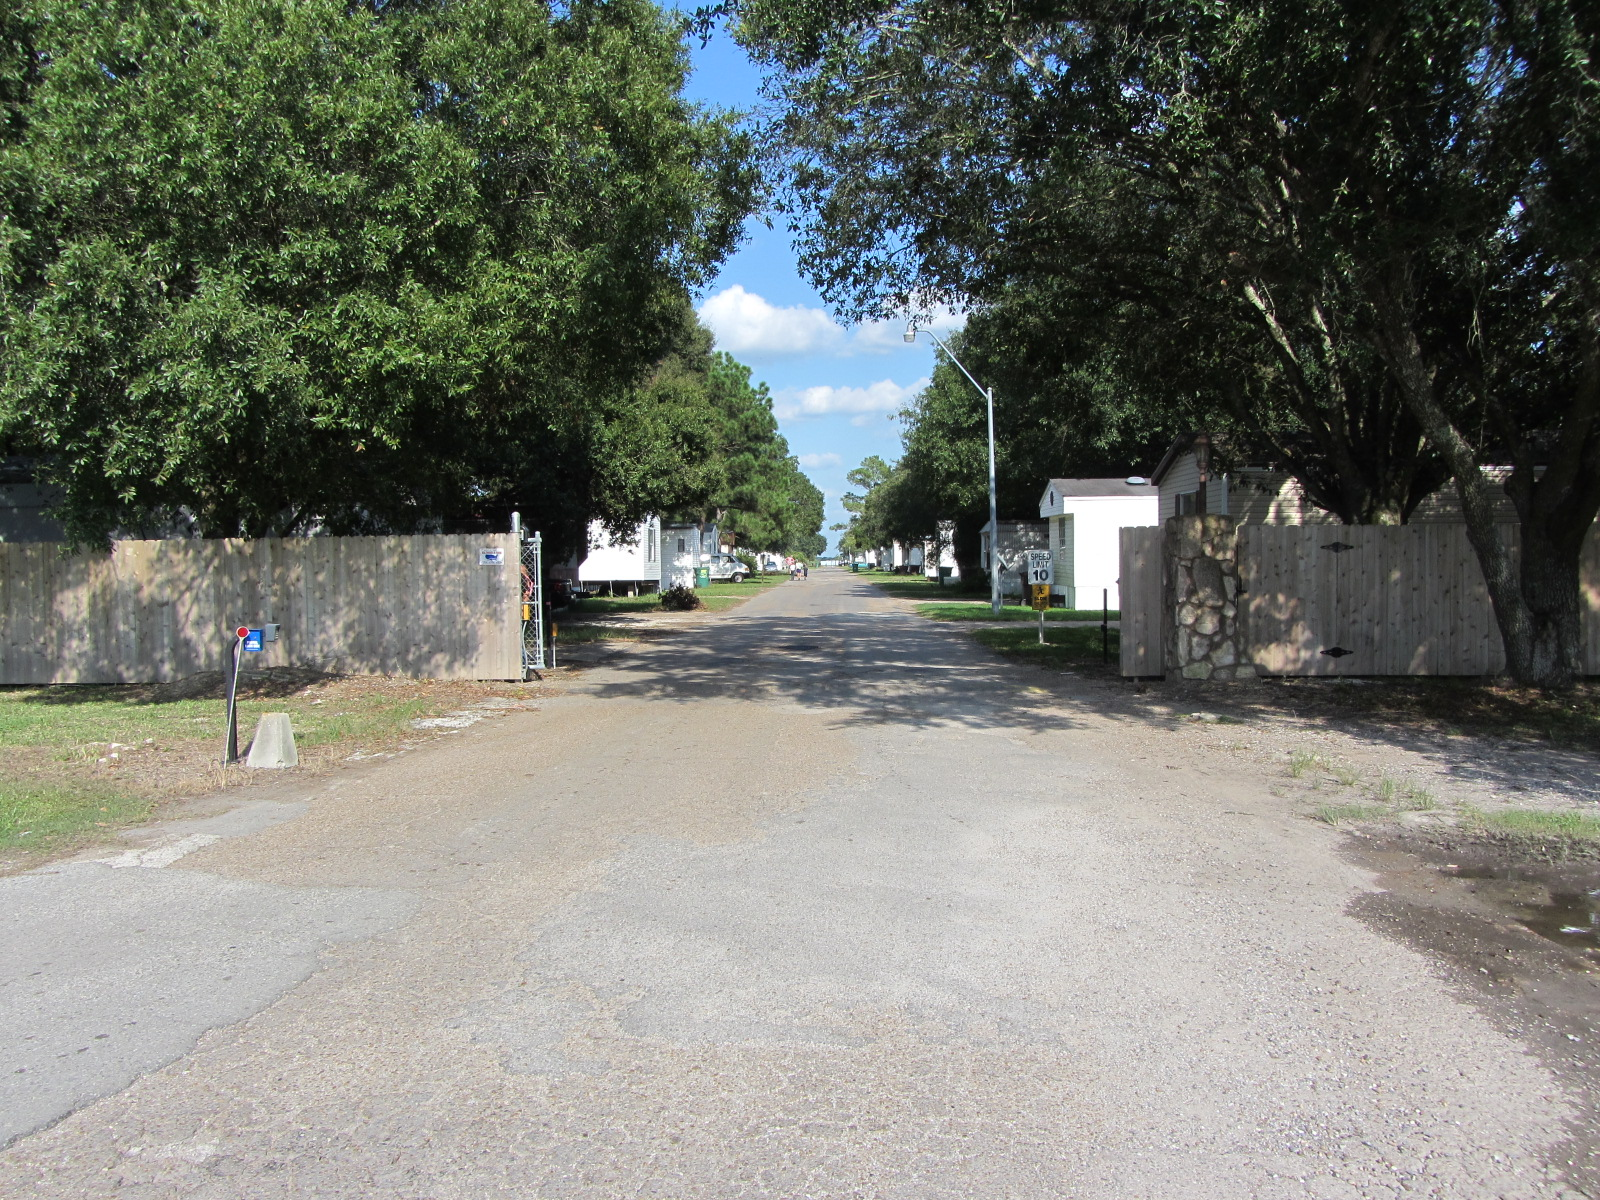 Country Aire Mobile Home Park 2465 Highway 397 Lake Charles LA 70615